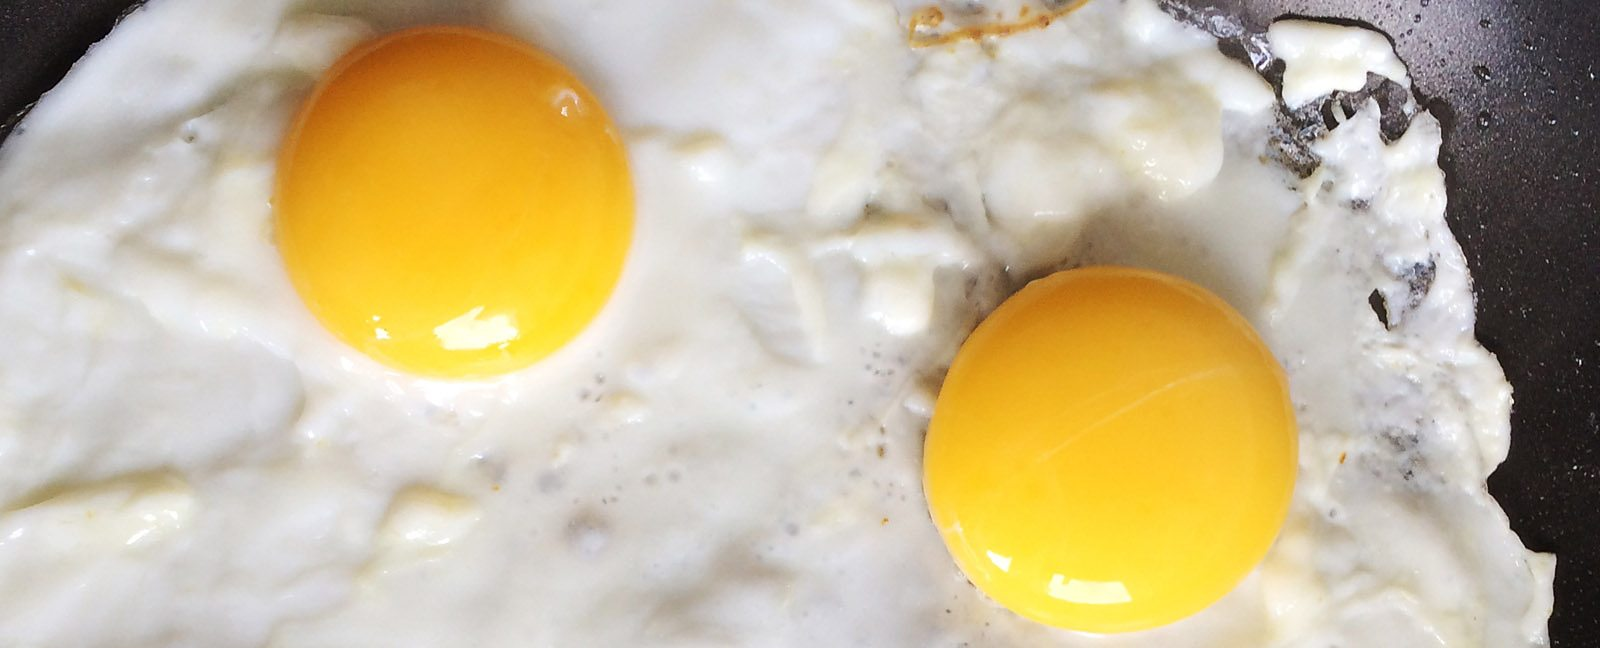 BBC iWonder - Should you worry about how much protein you eat?